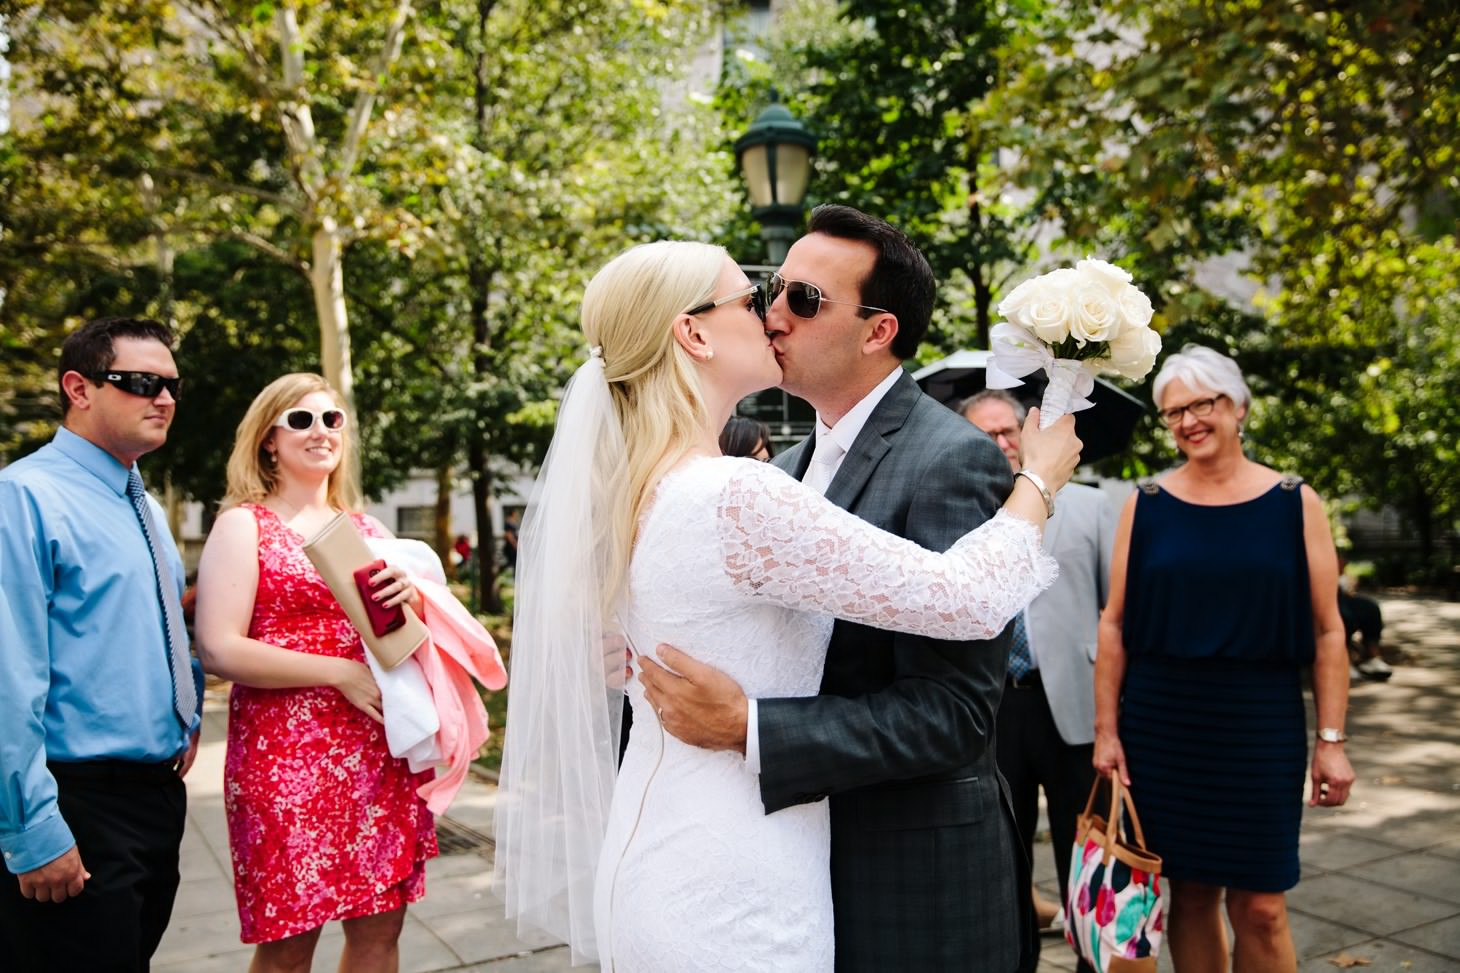 nyc-wedding-photographer-city-hall-elopement-smitten-chickens-city-hall-wedding007.jpg